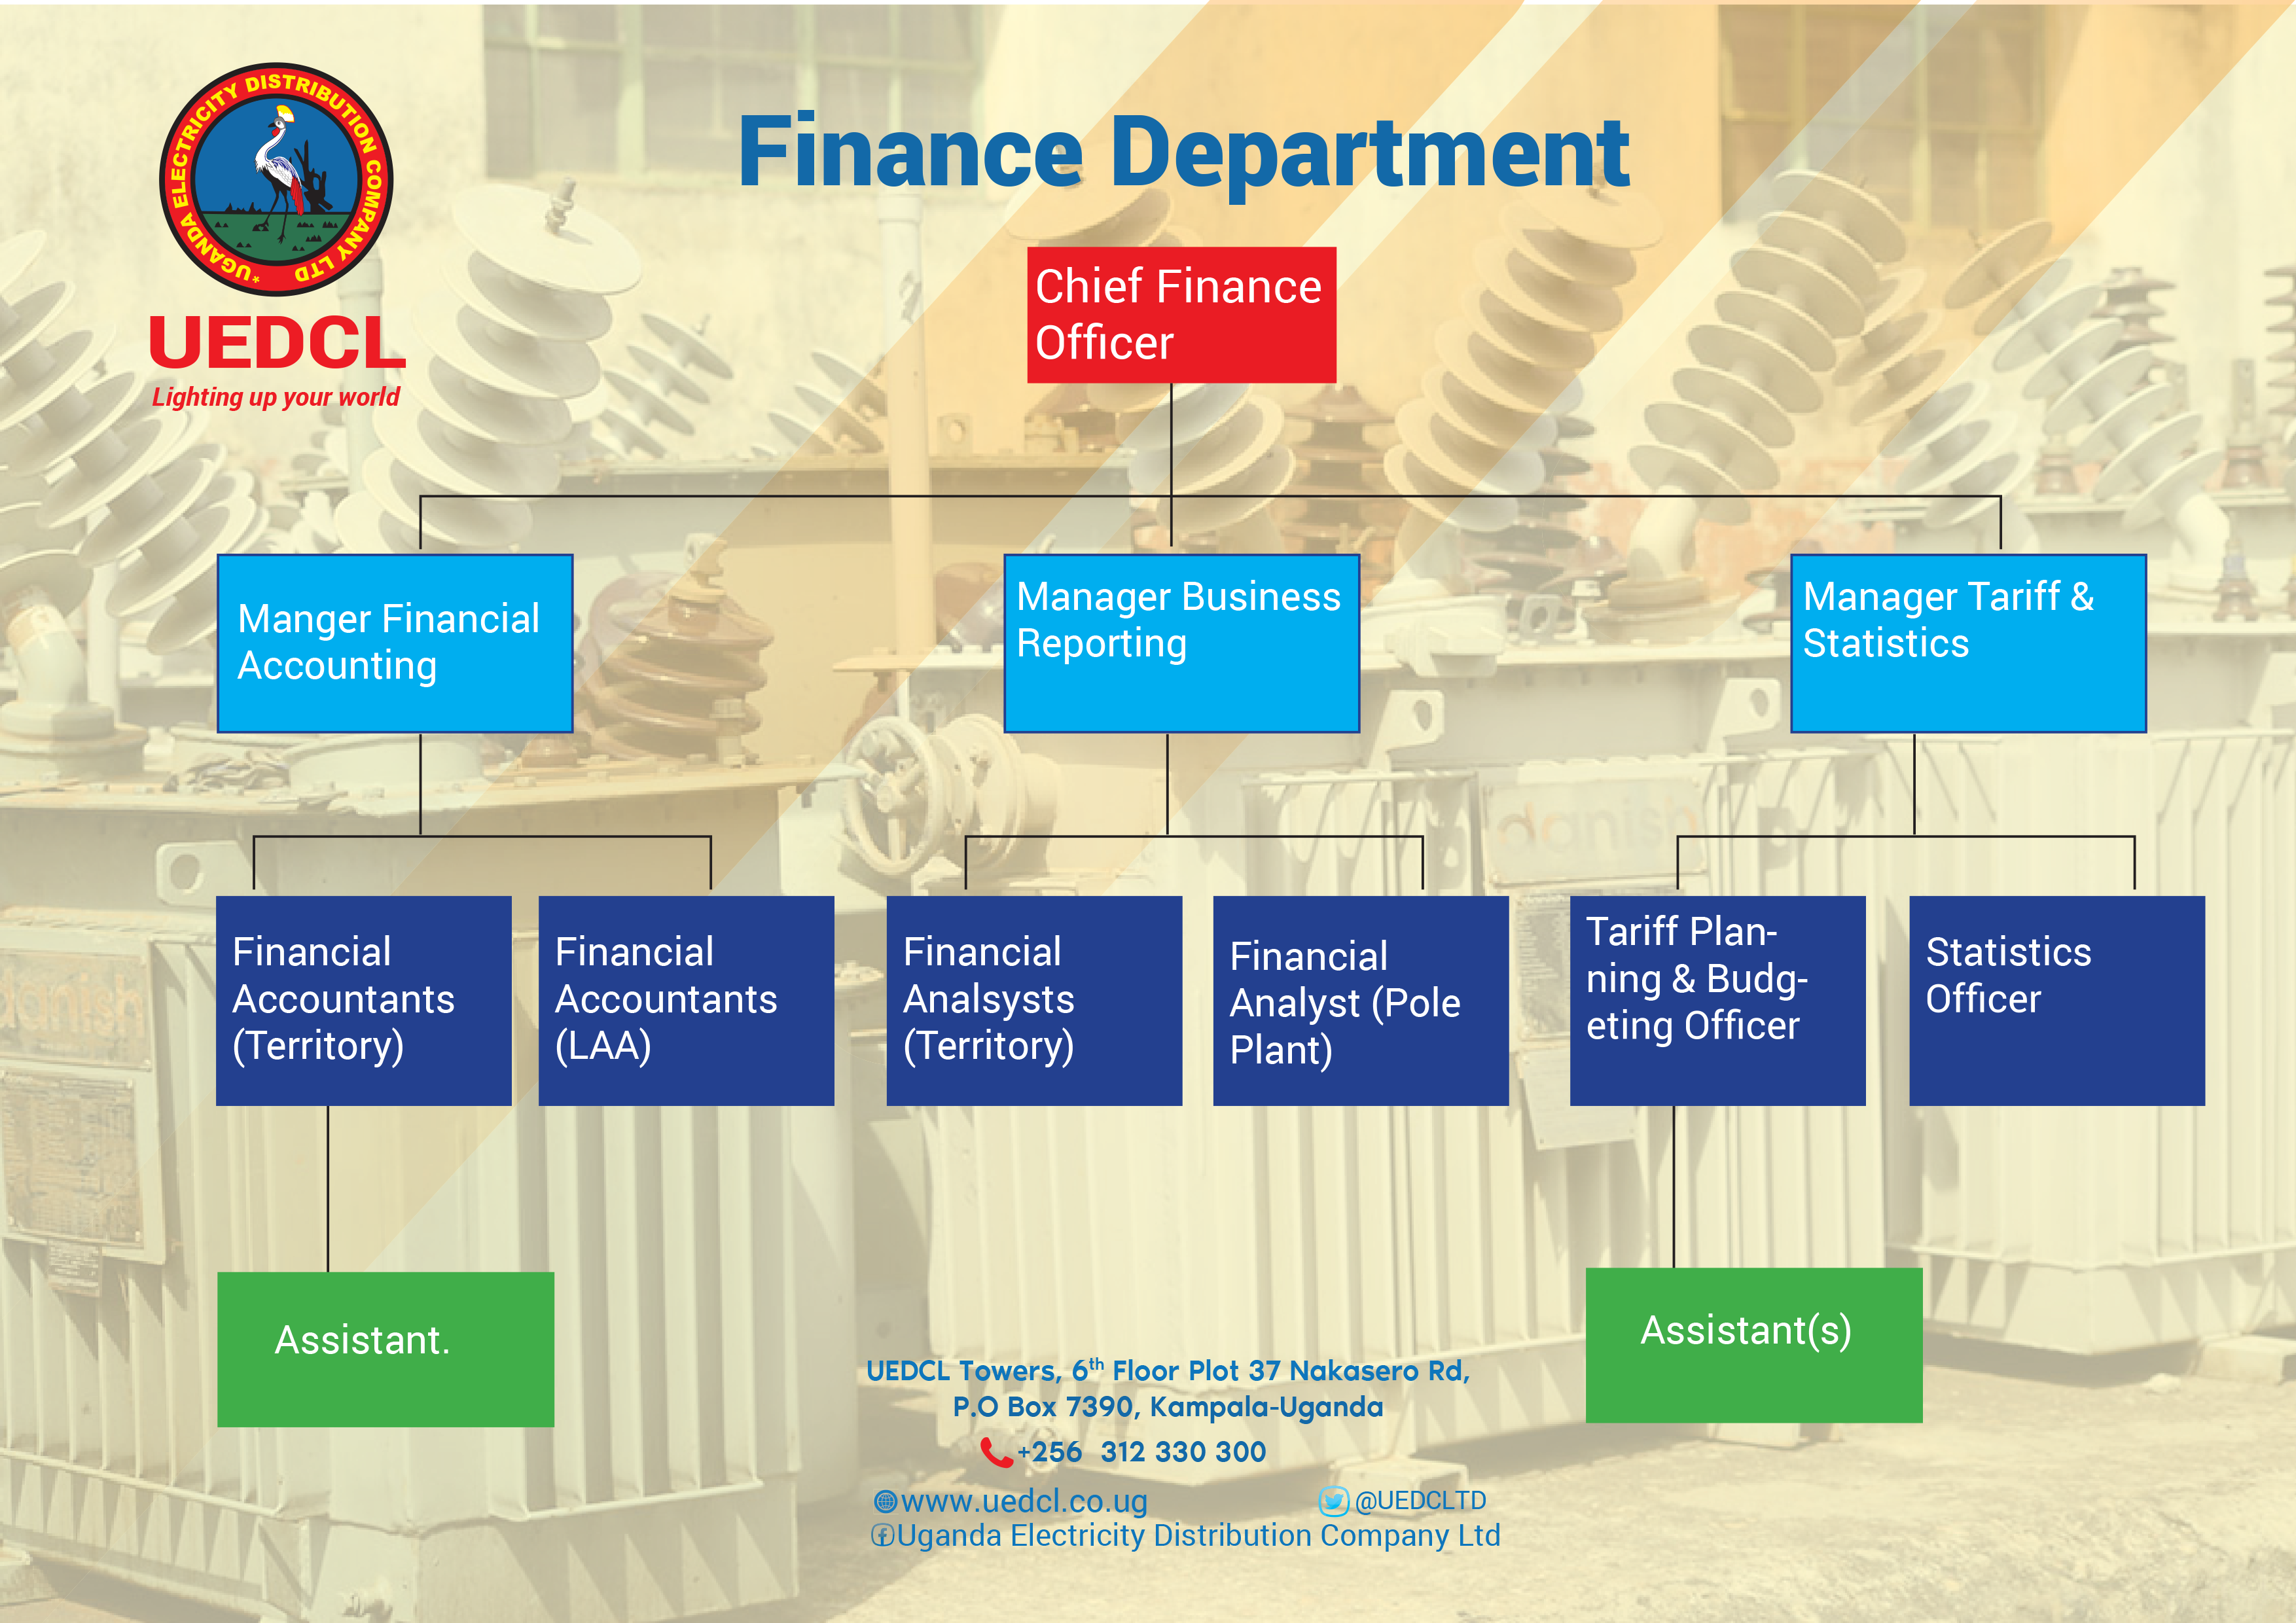 UEDCL Finance Department structure